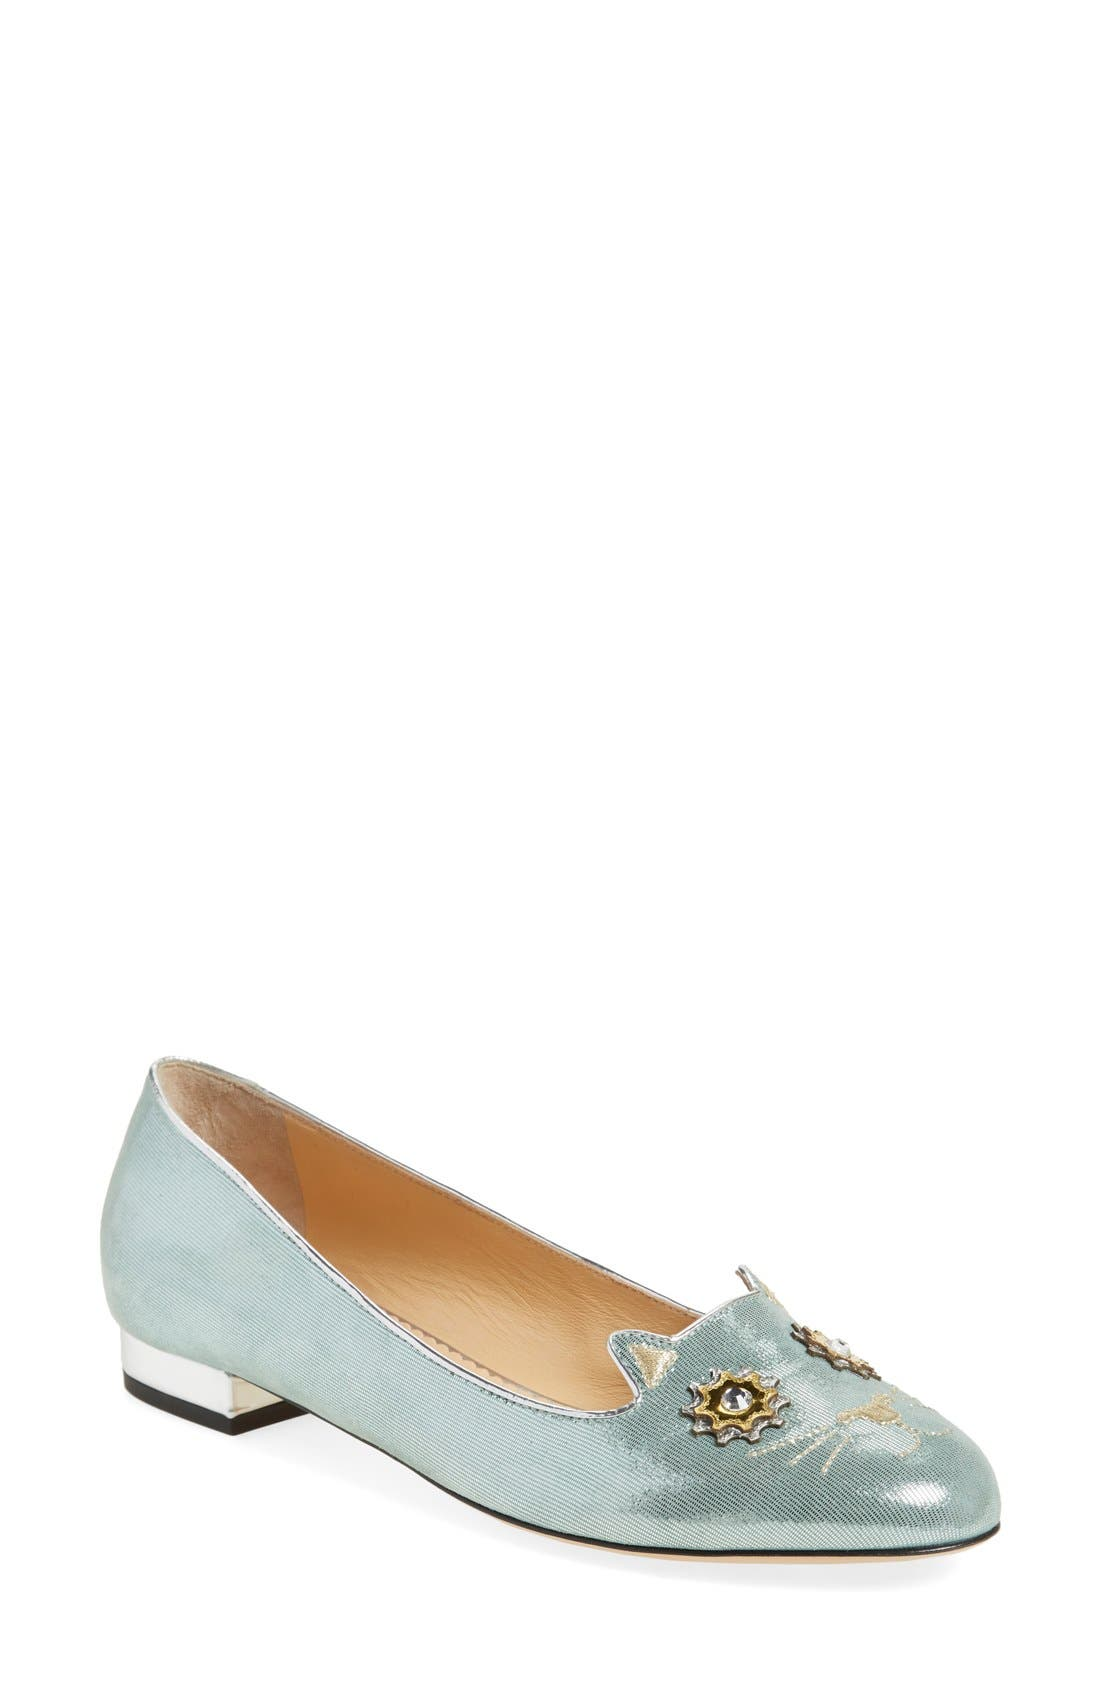 CHARLOTTE OLYMPIA 'Mechanical Kitty' Flat, Main, color, 401